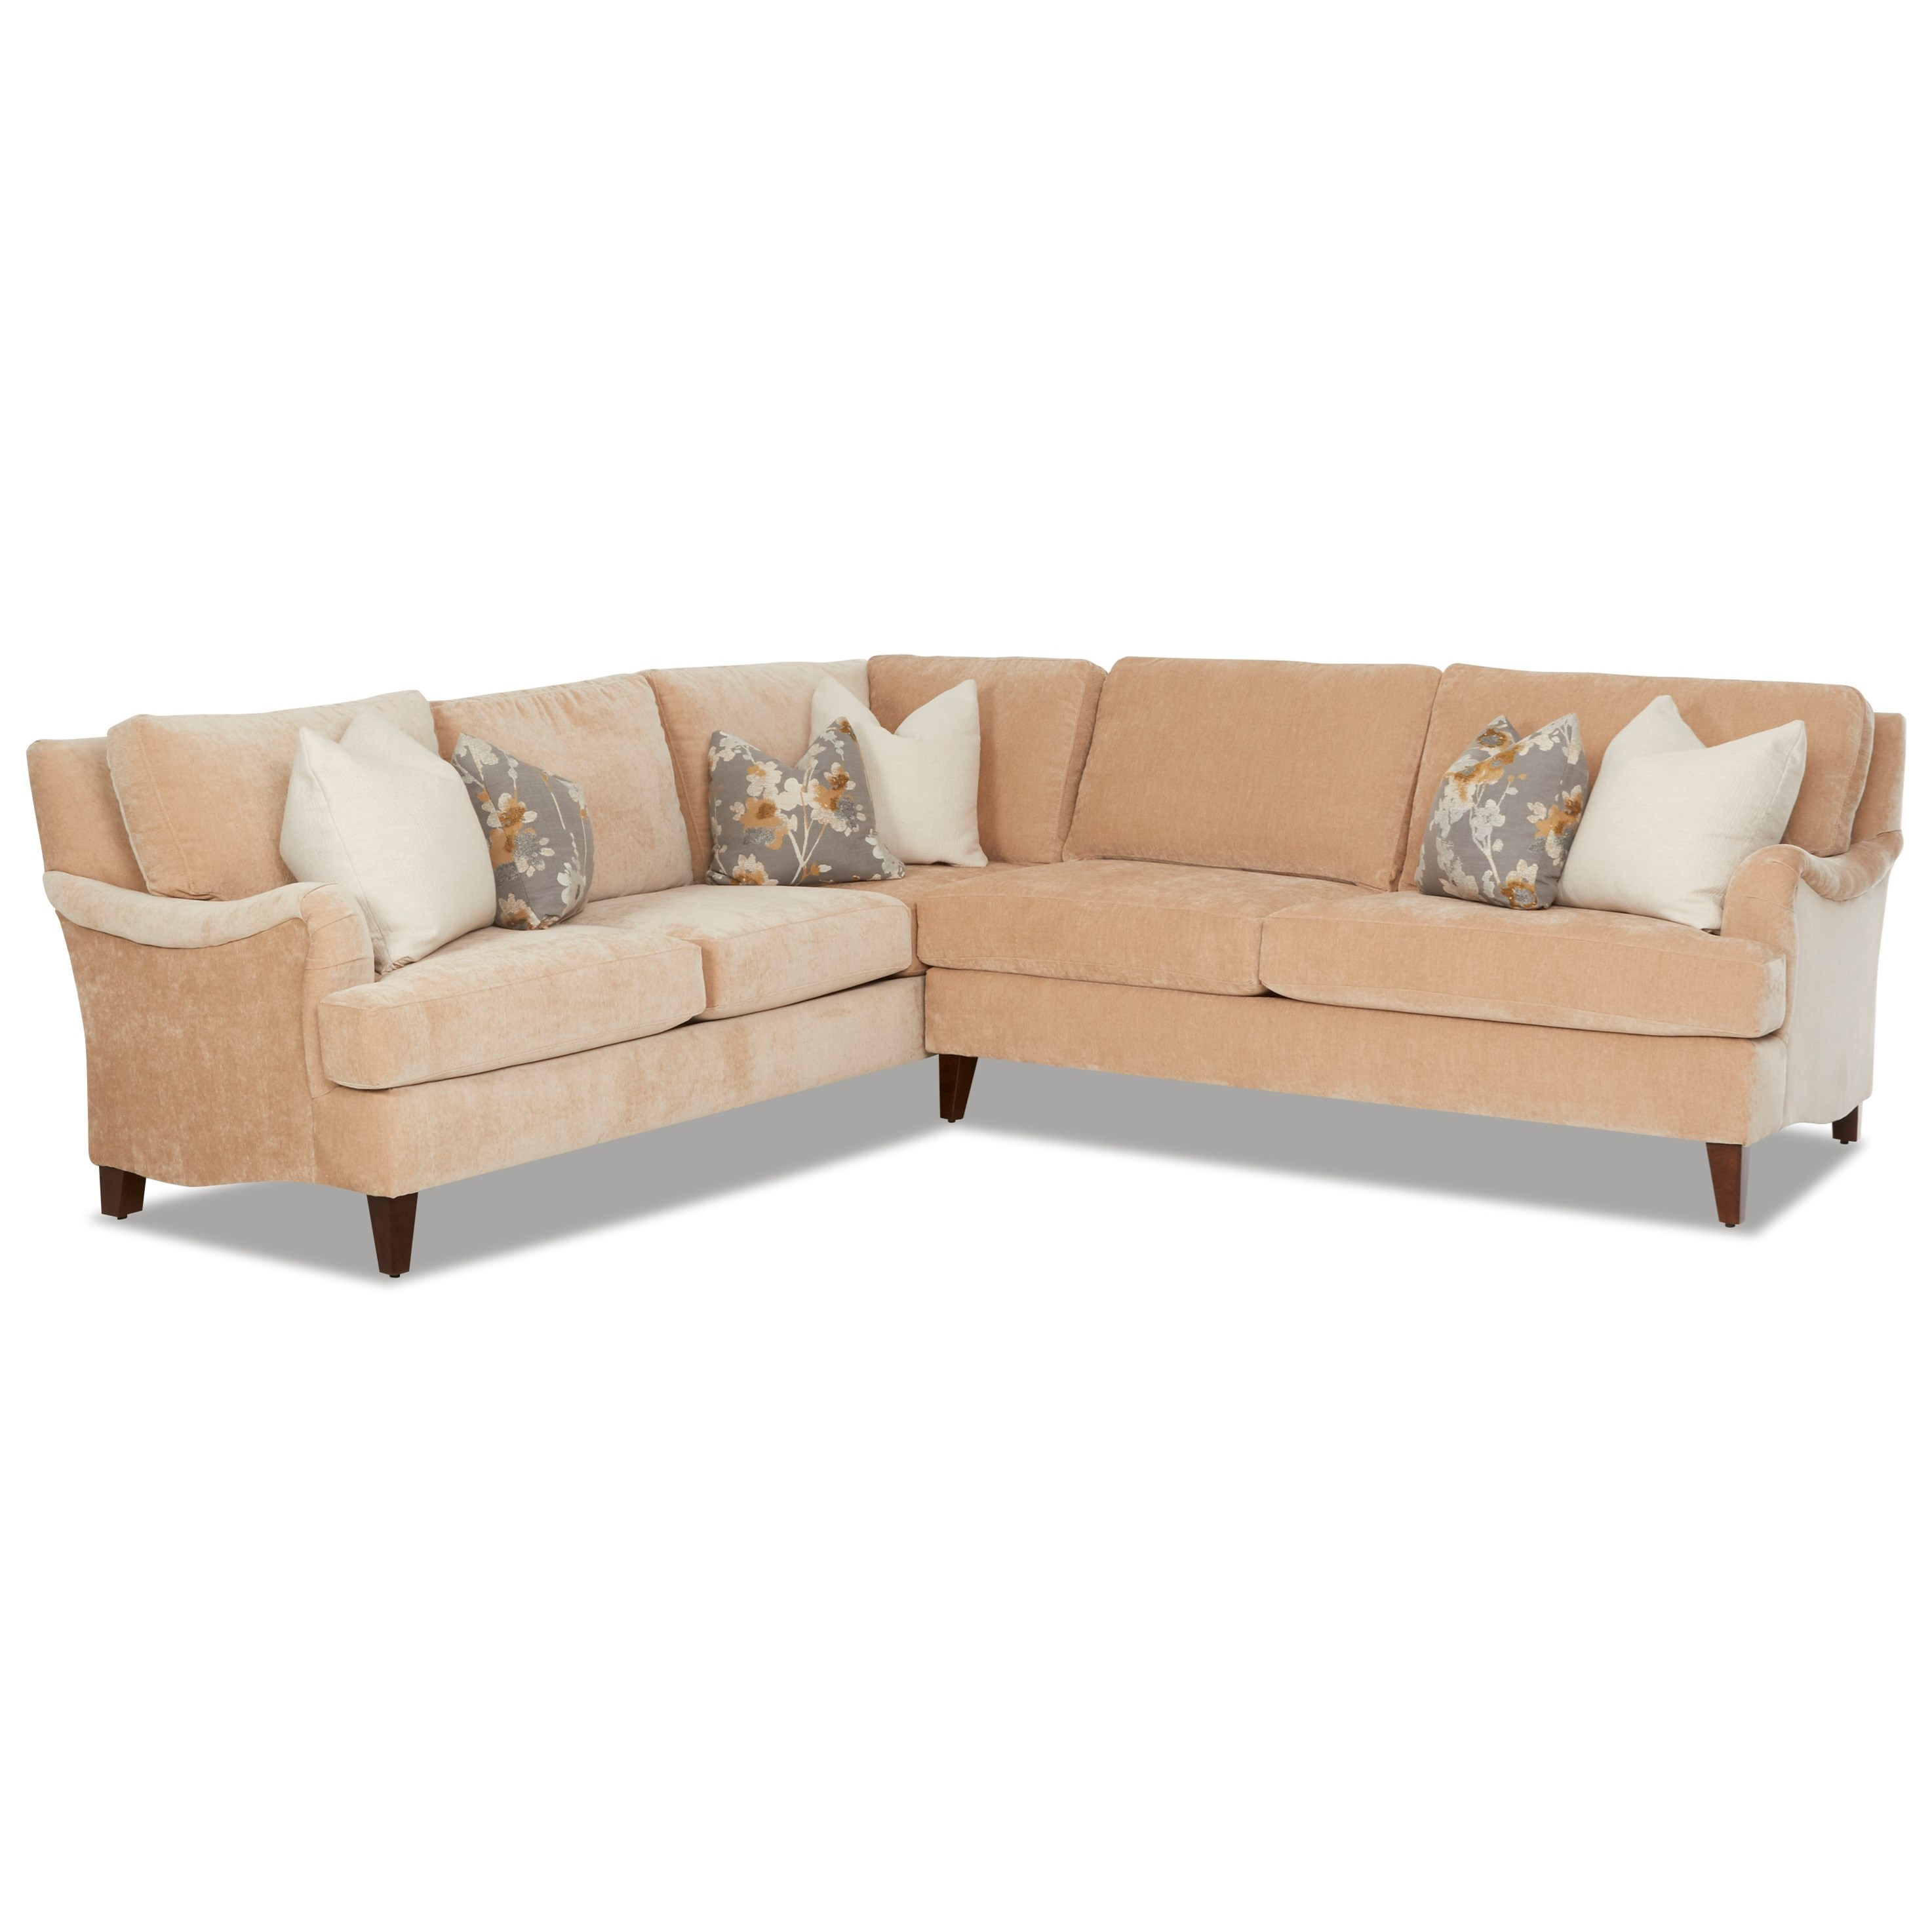 Alden 2-Piece Sectional by Klaussner at Johnny Janosik